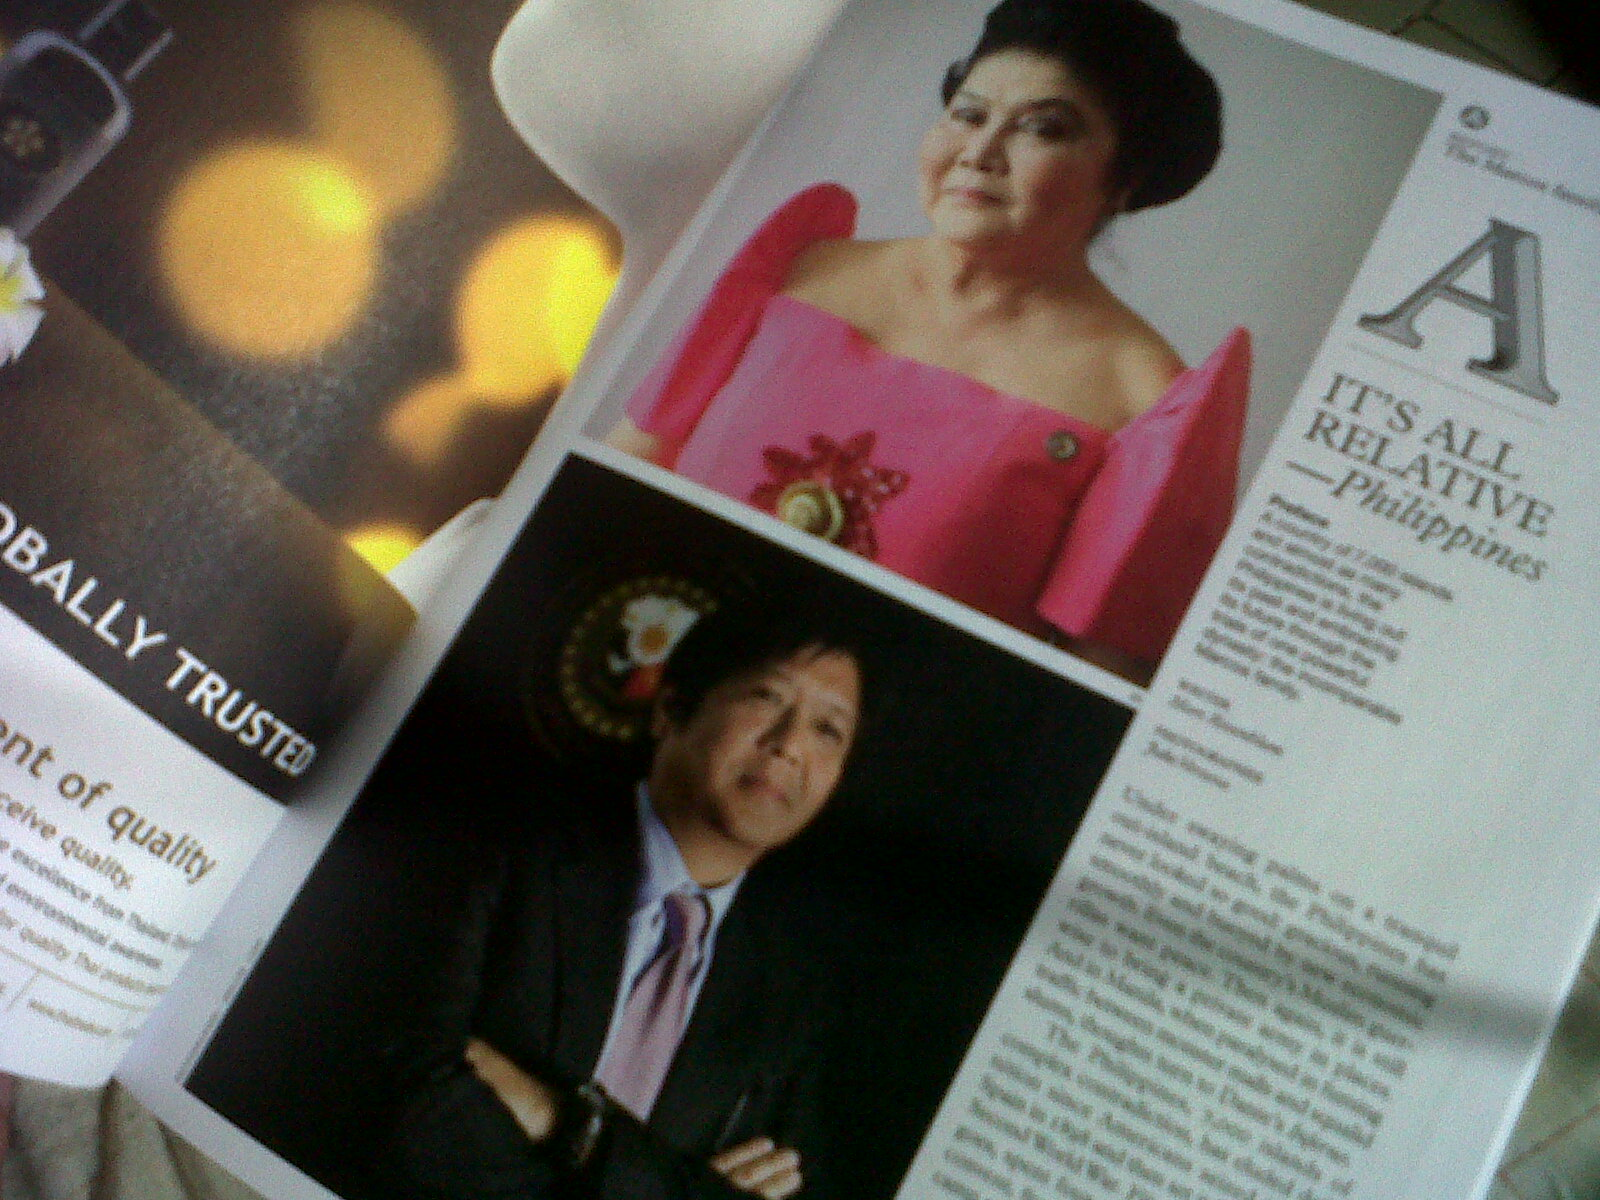 Monocle magazine feature on Imelda, Bongbong Marcos